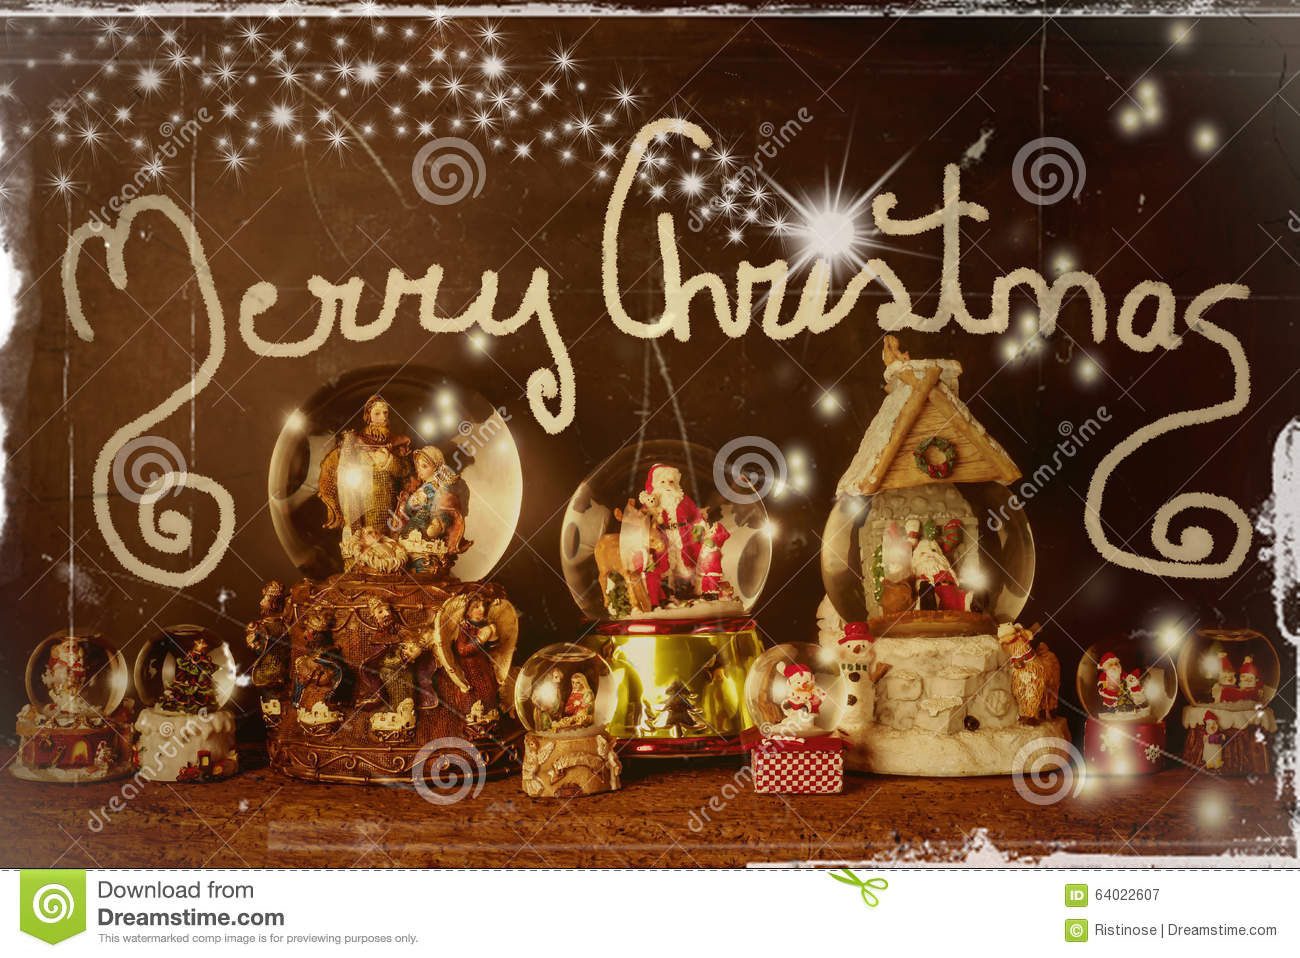 Old Christmas Card Merry Christmas Stock Image - Image of religion ...